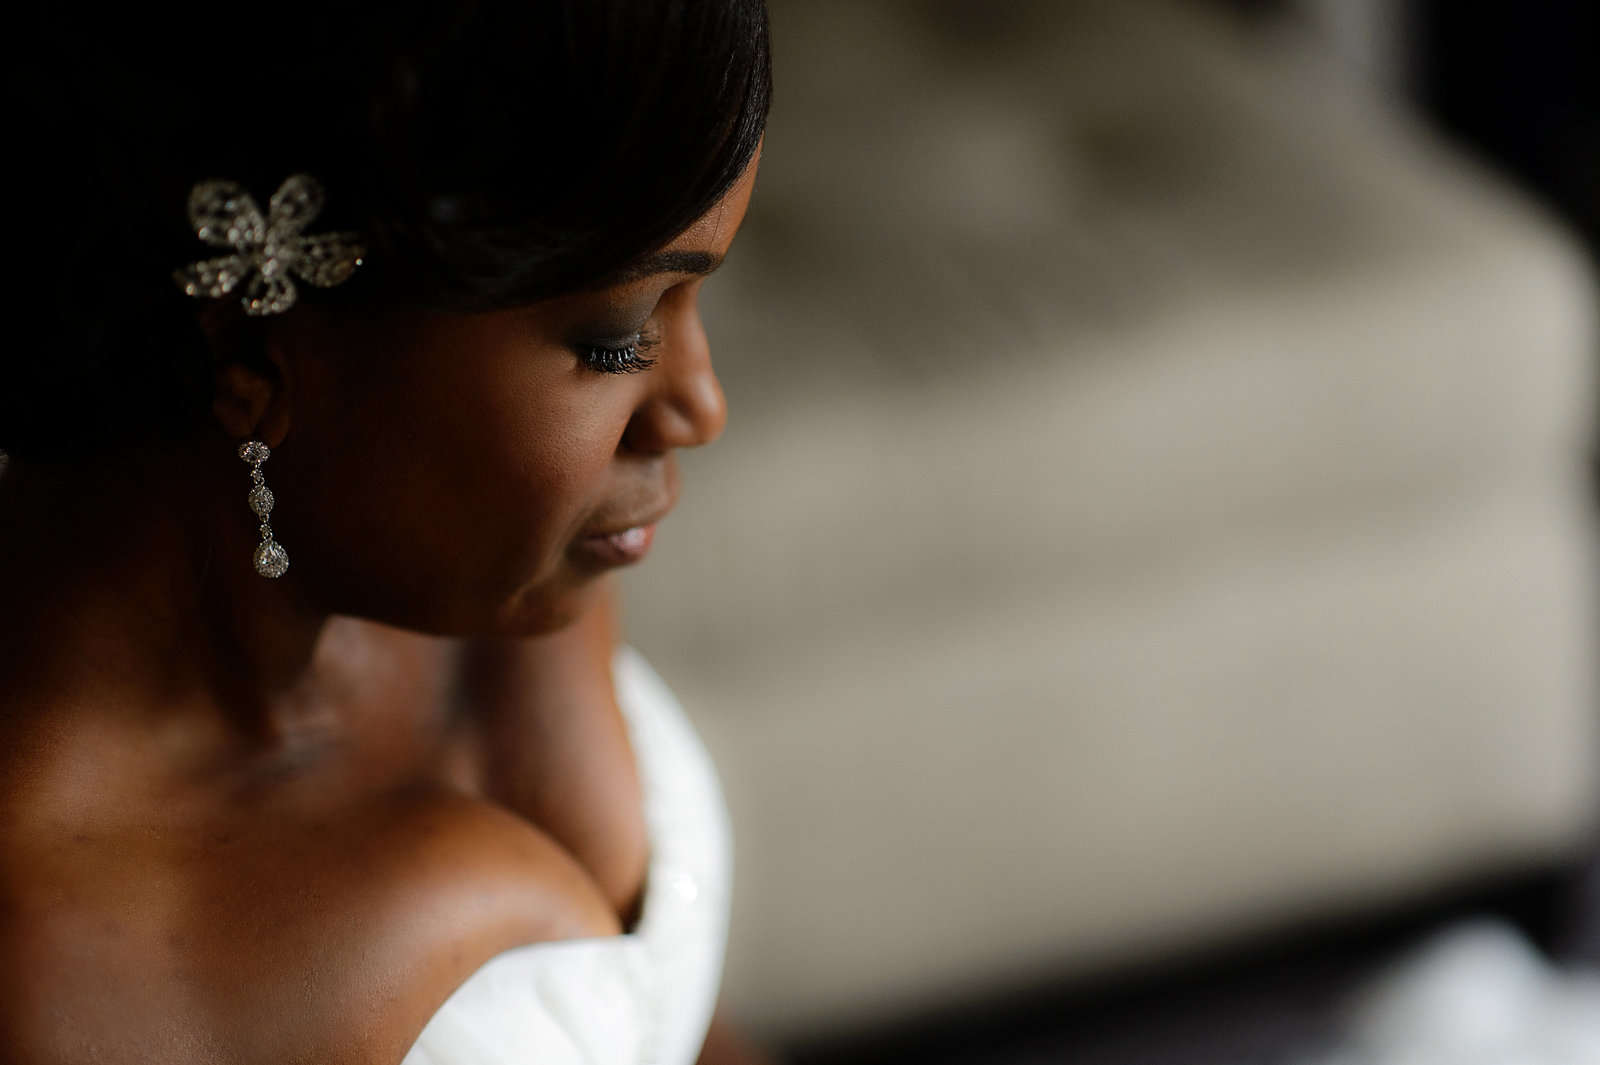 Hotel Palomar  bridal portrait  photo by Girl Photography